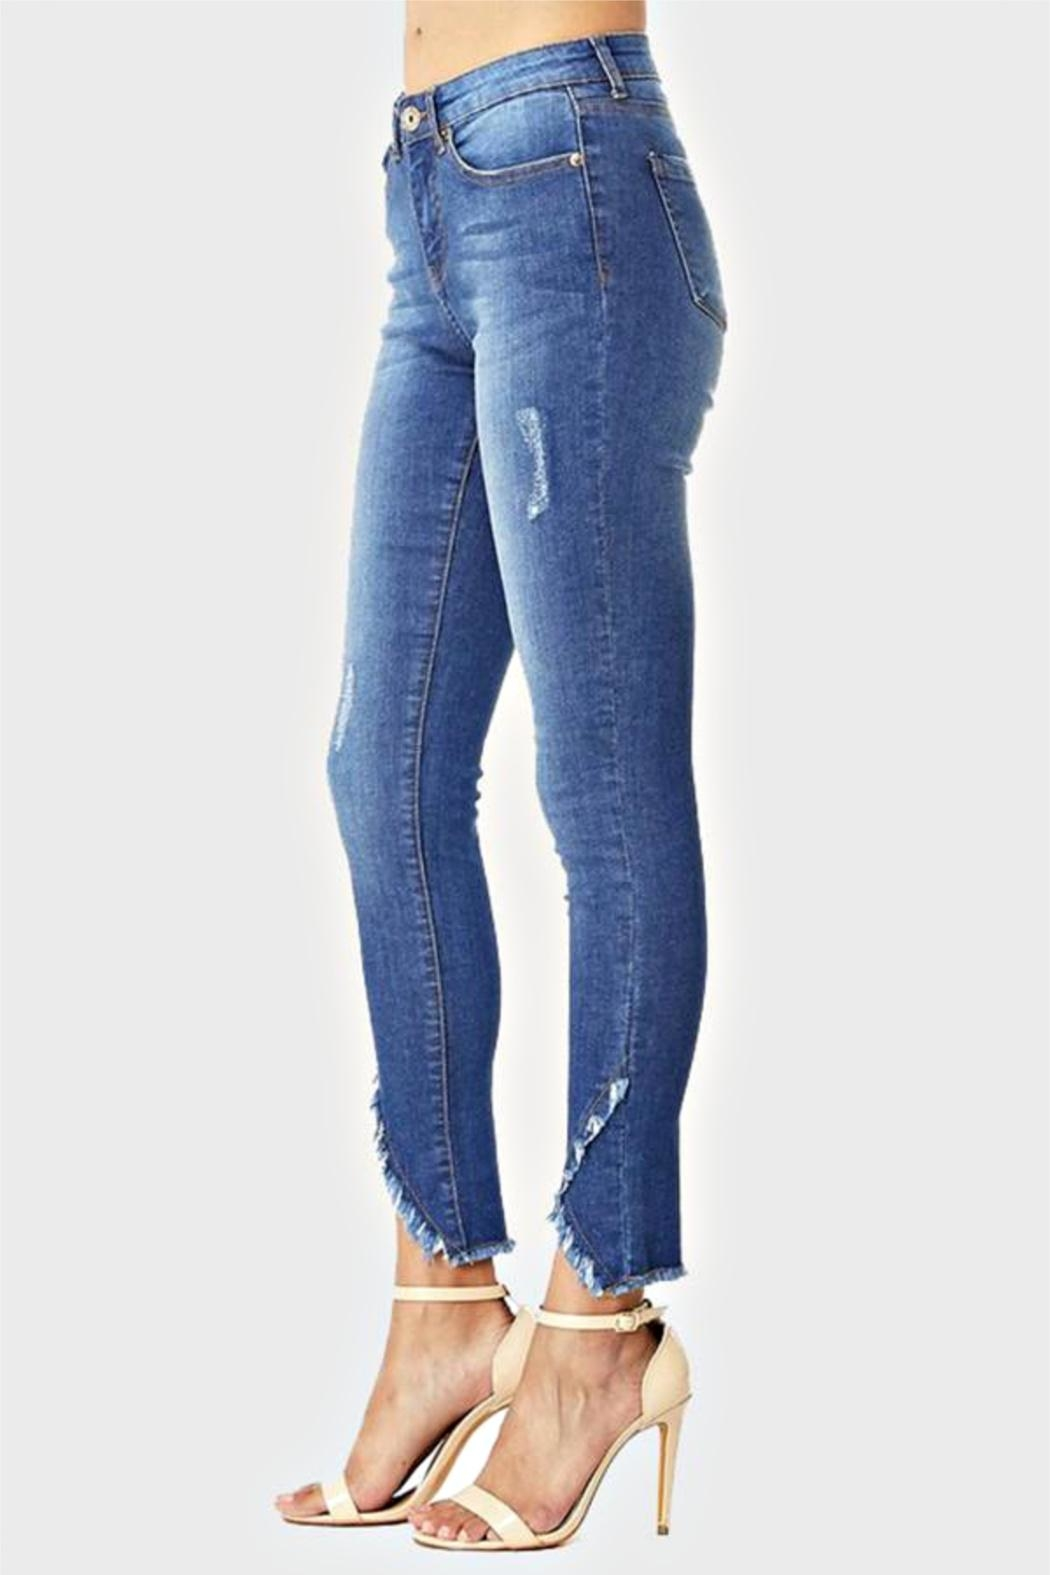 Muselooks Mid-Rise Frayed-Ankle Skinny-Jean - Side Cropped Image